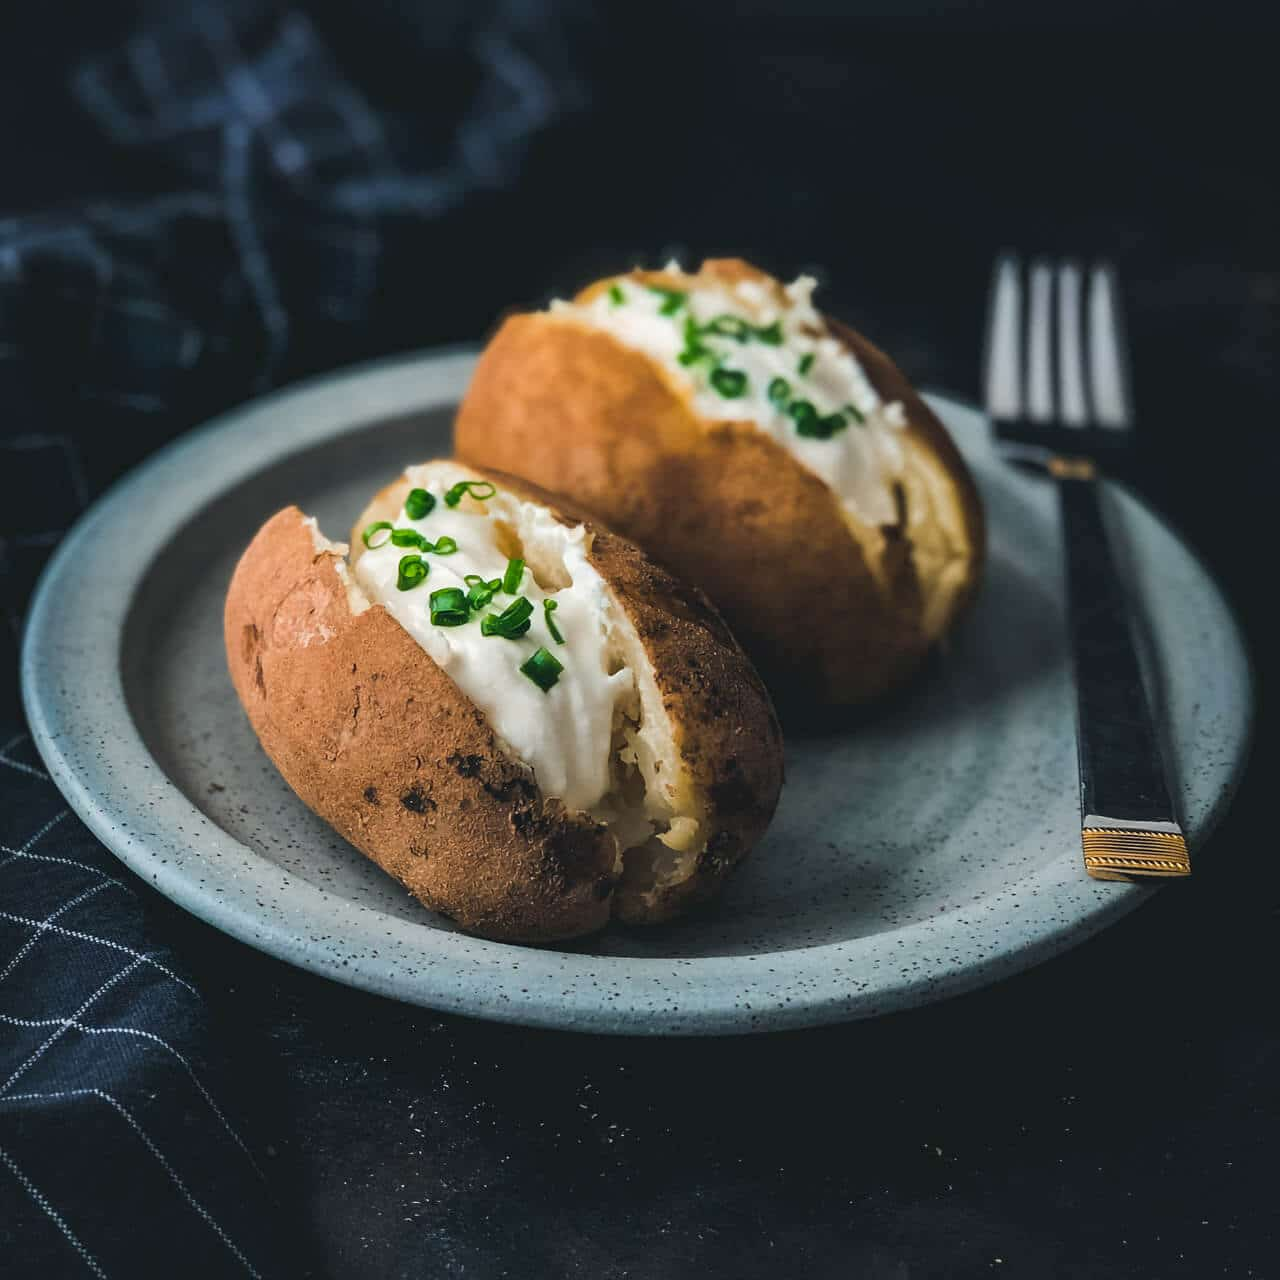 A black counter with a blue plate and two baked potatoes cut down the center vertically and topped with sour cream and chives with a silver fork on the right side of the plate.